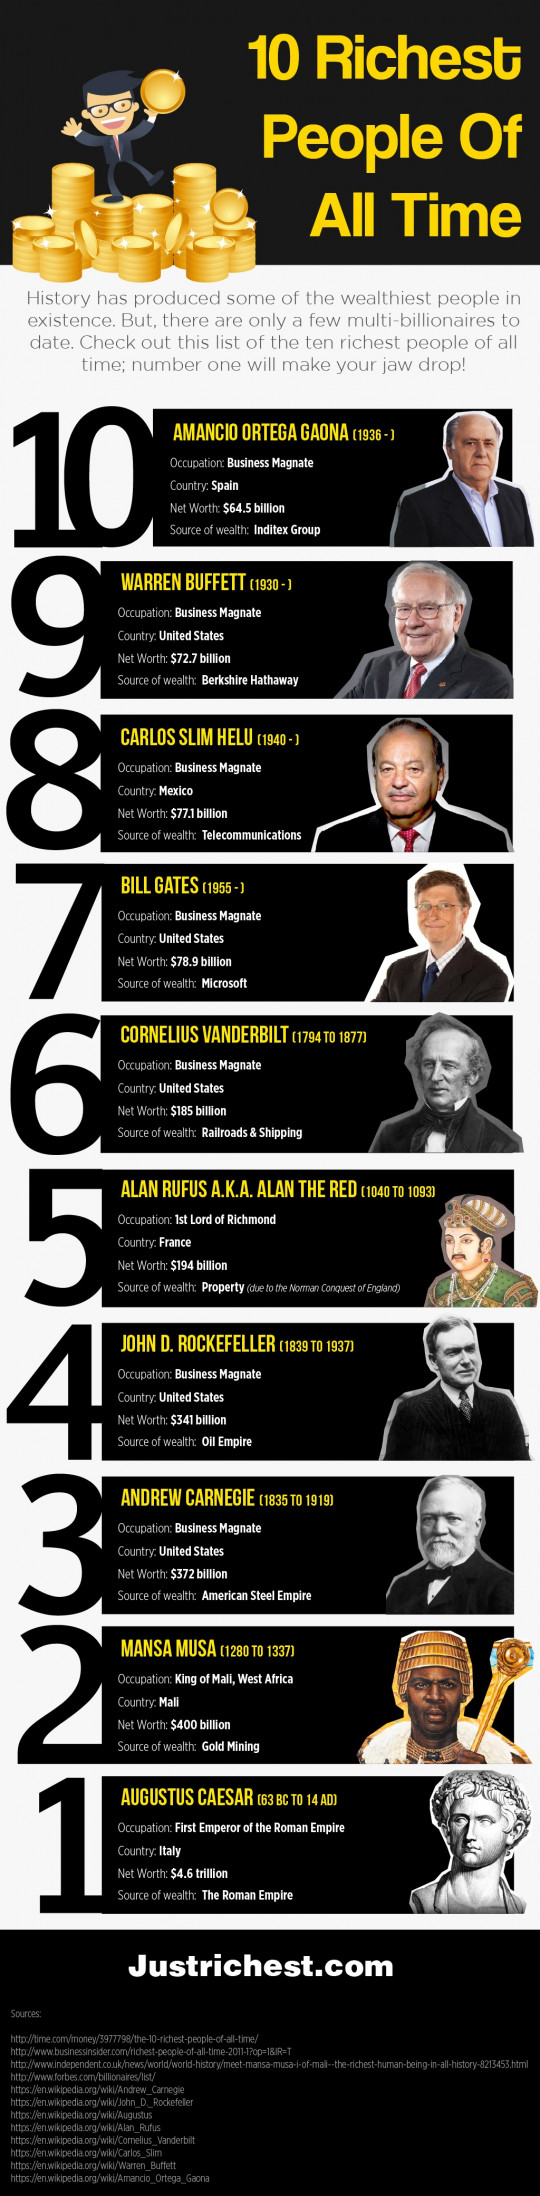 10 Richest People of All Time